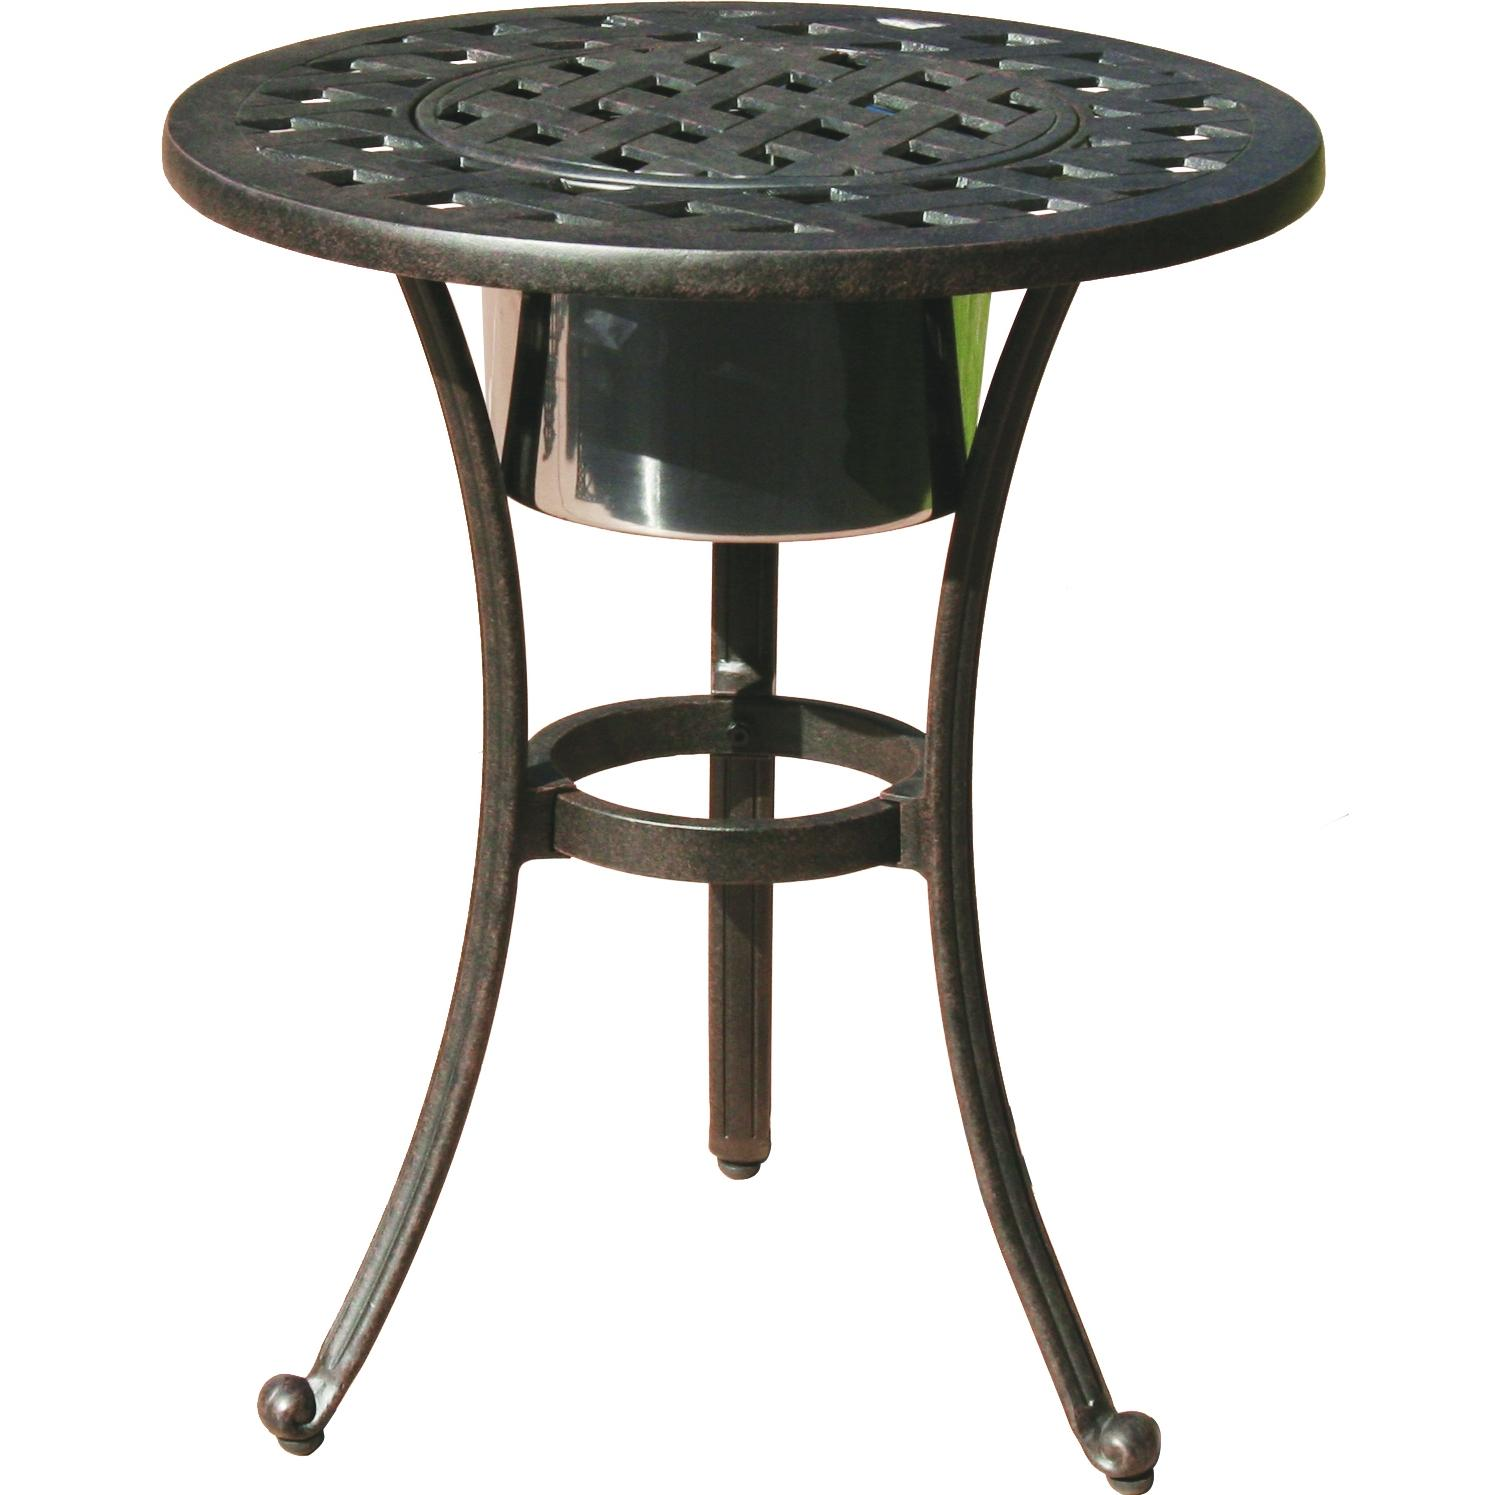 premium outdoor coffee tables the side table with ice bucket darlee series cast aluminum patio end insert round ikea wall cabinets bedroom umbrellas that provide shade wood top